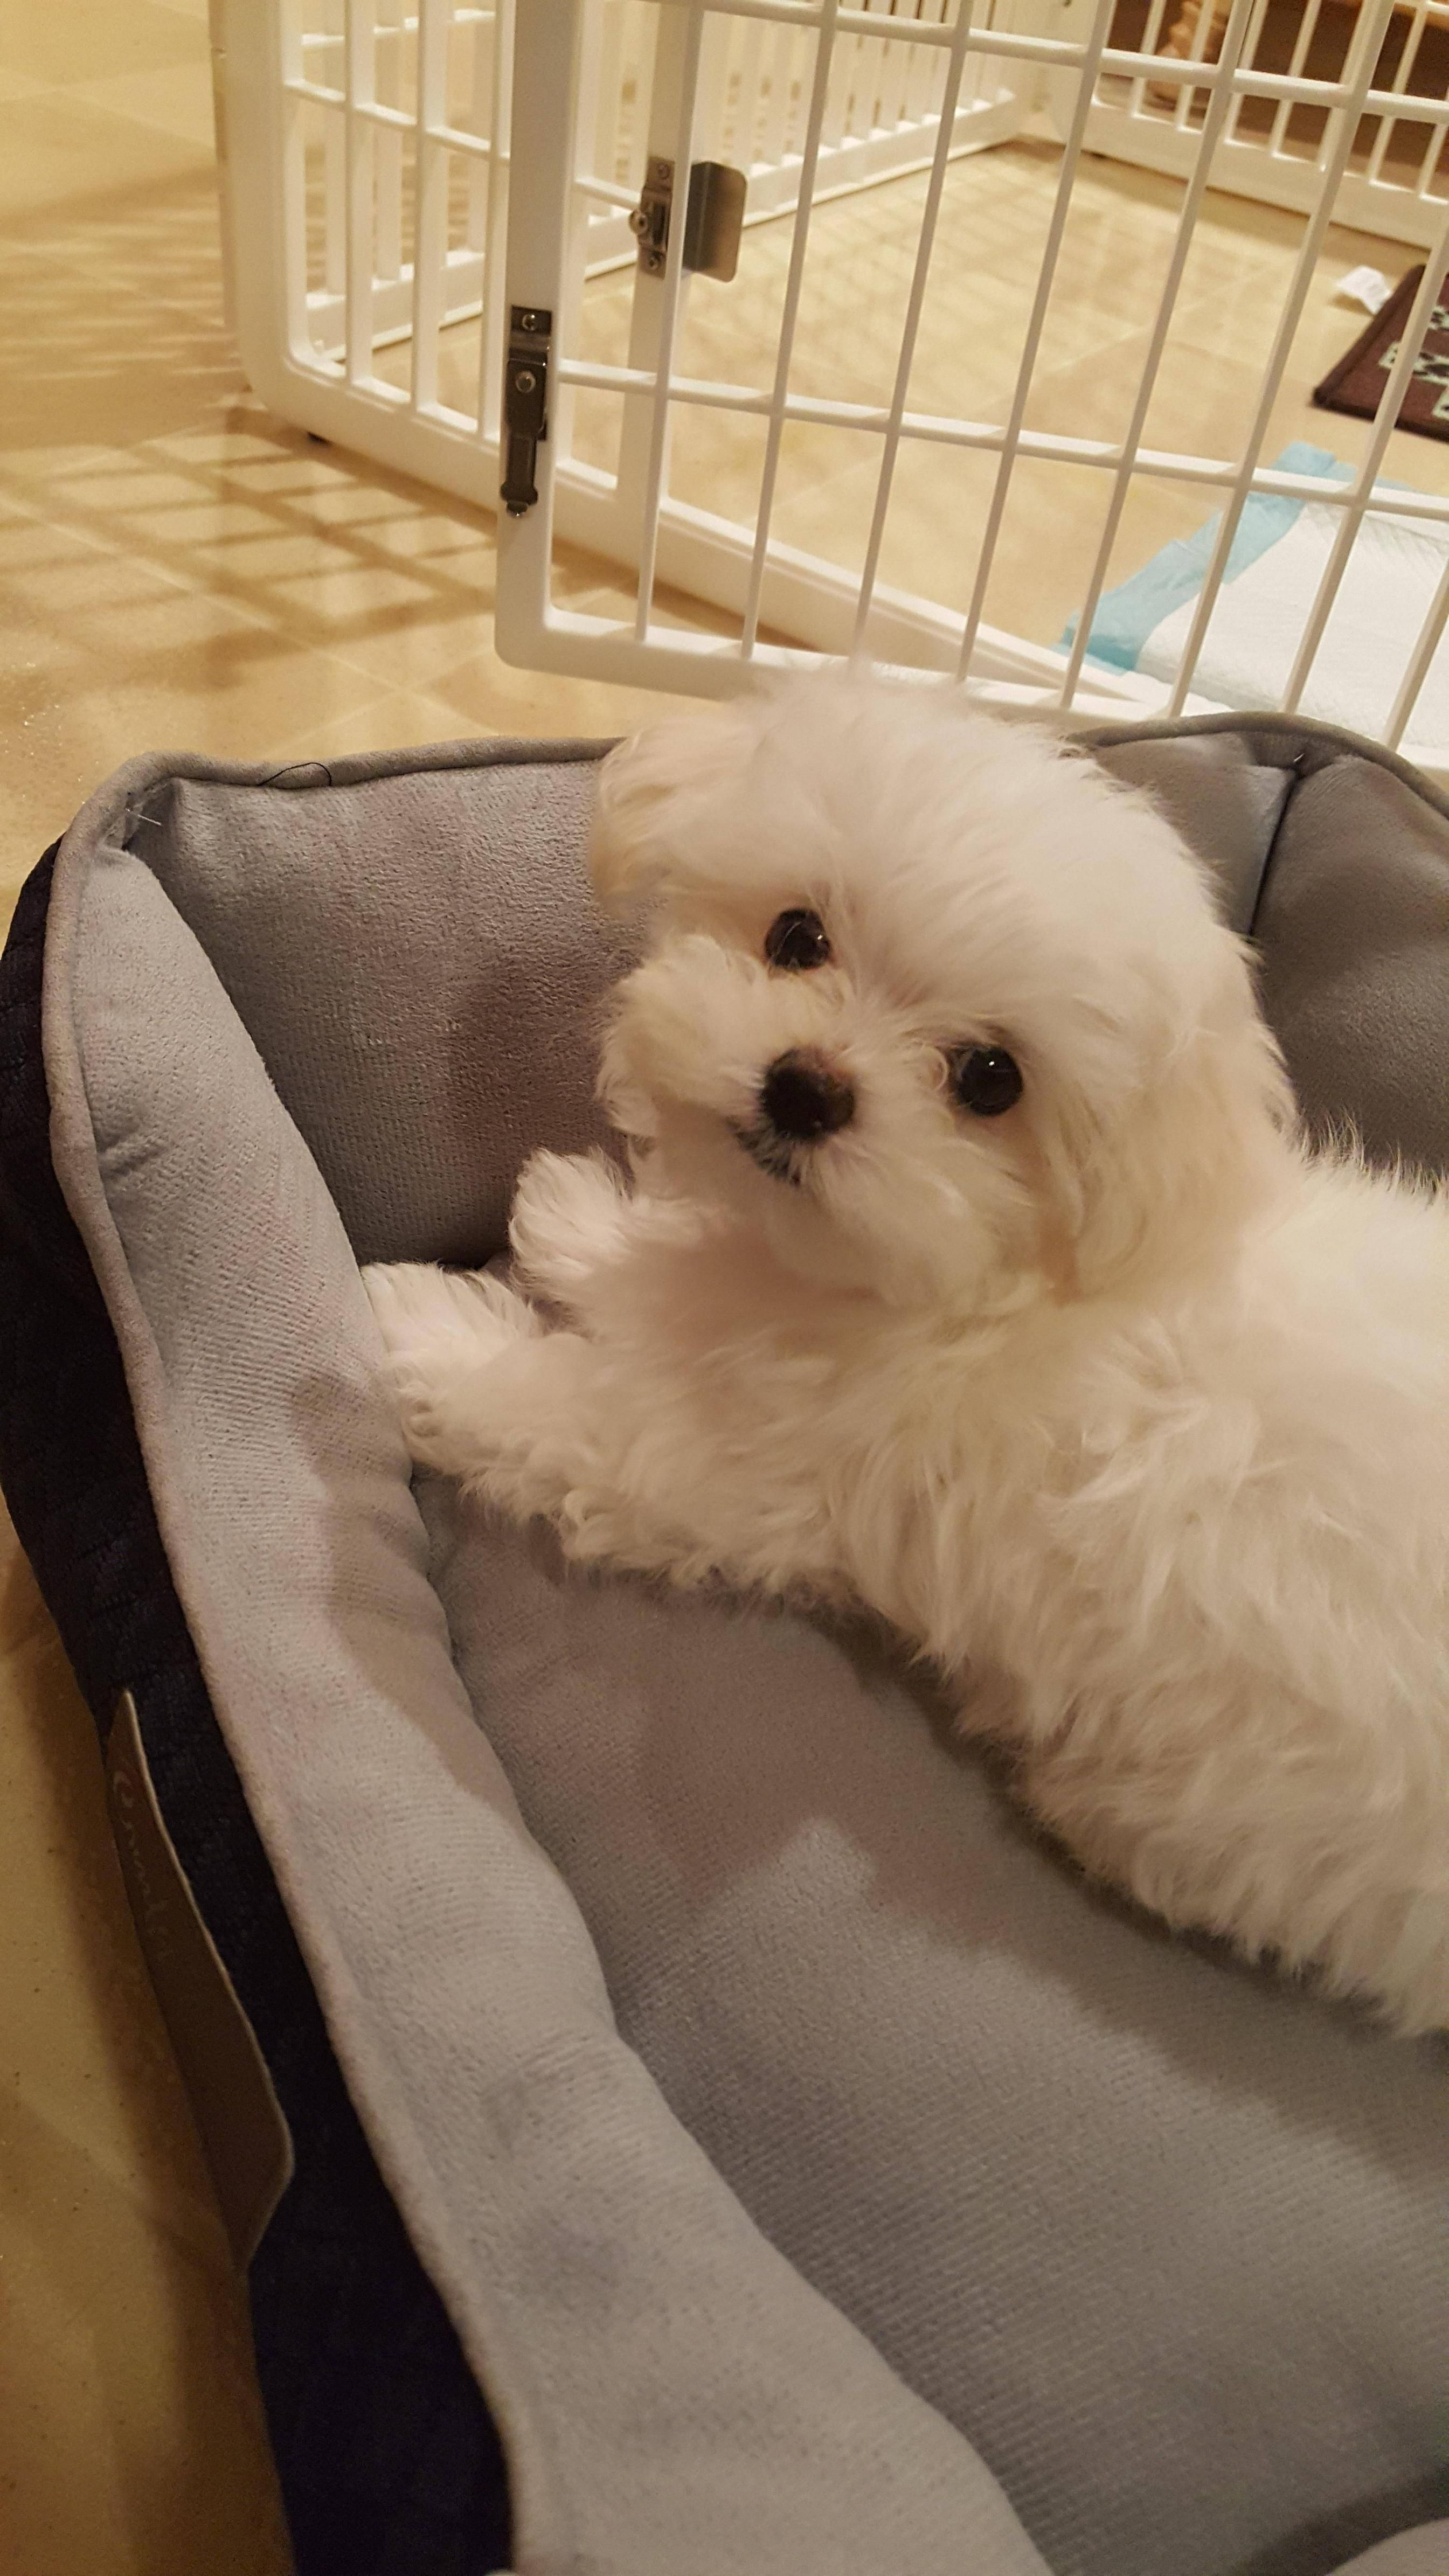 Meet Toby My Gfs New Puppy This Is The Closest I Ve Ever Had To A Dog Cute New Puppy Puppies Dog Pictures